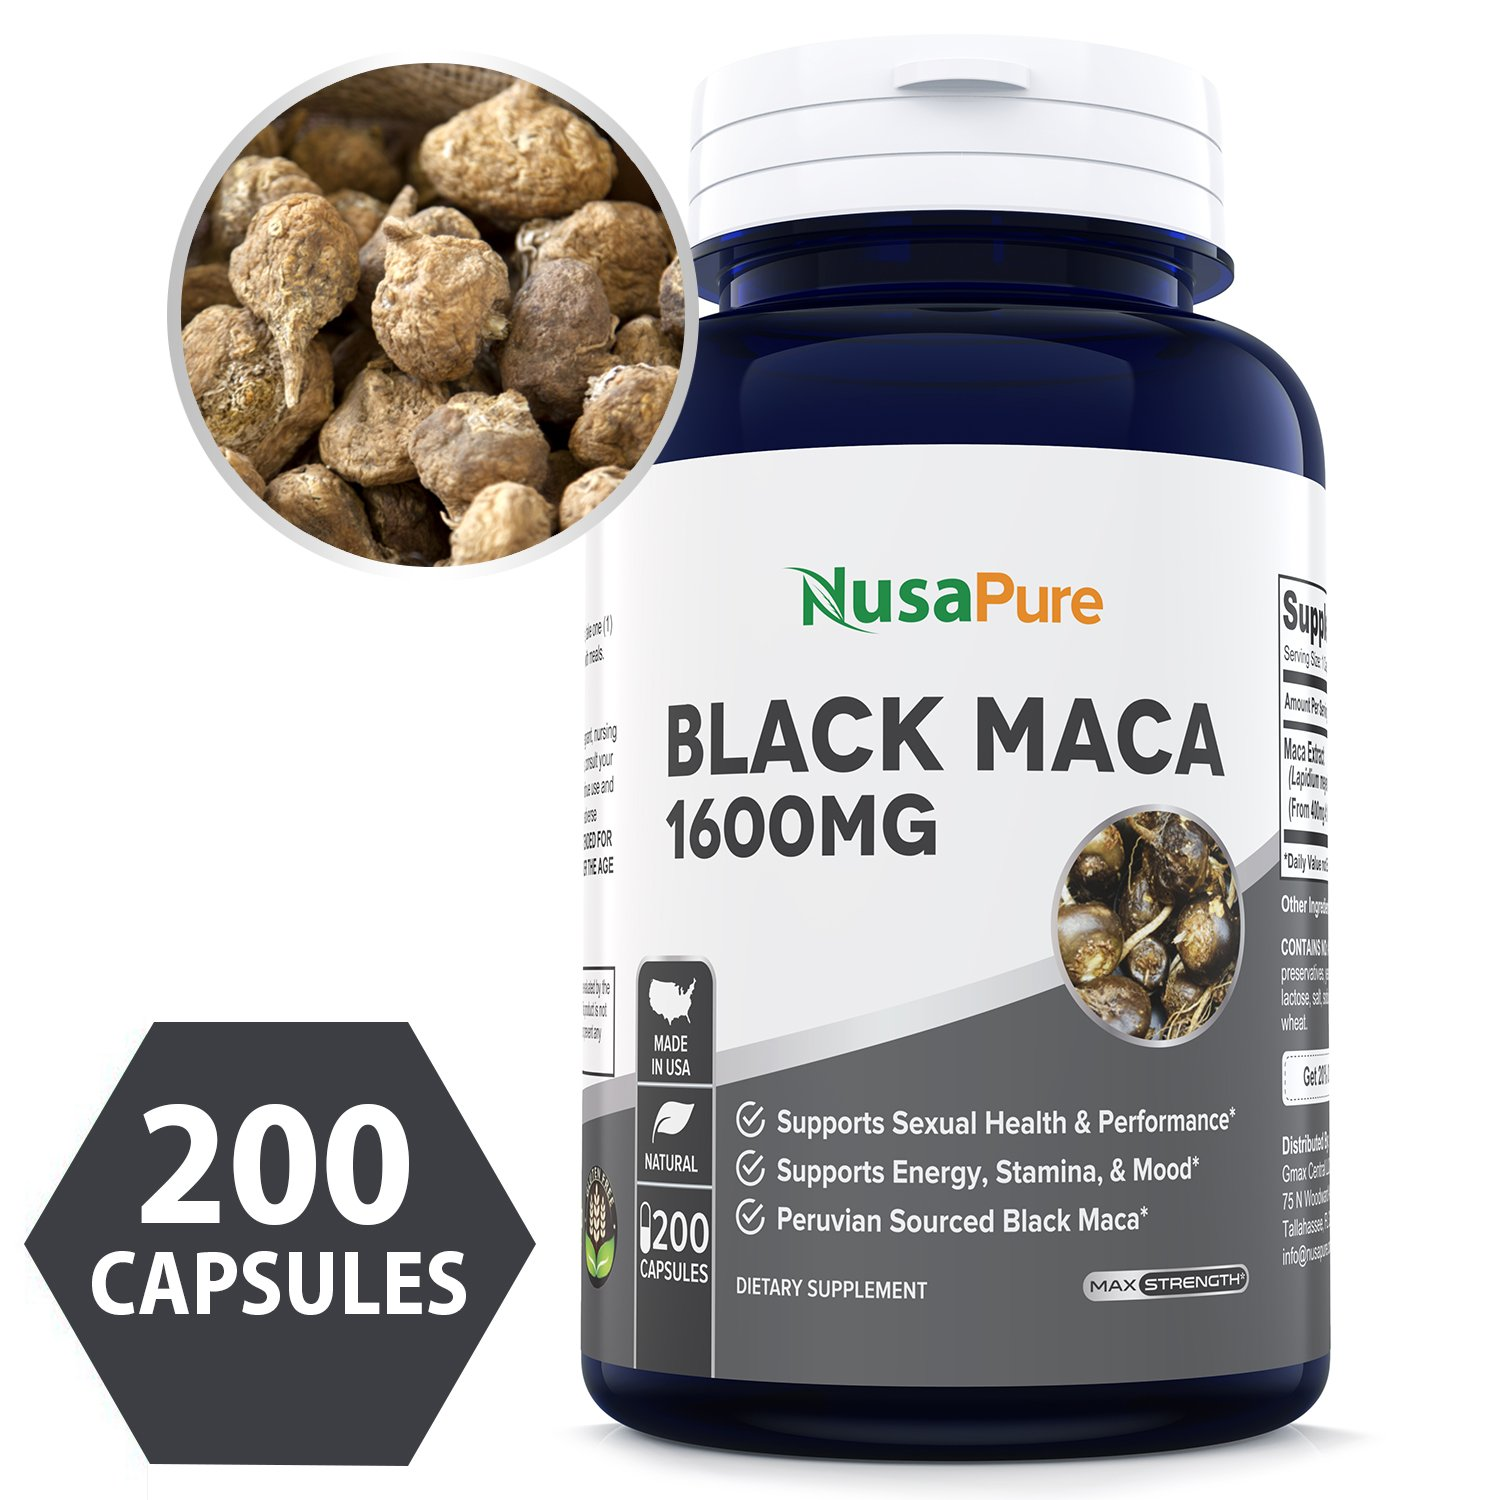 Best Black Maca Root 1600mg 200 Capsules (Non-GMO & Gluten Free) Max Strength - Maca Root Extract Supplement from Peru - Support Reproductive Health - 100% Money Back Guarantee - Order Risk Free! by NusaPure (Image #1)